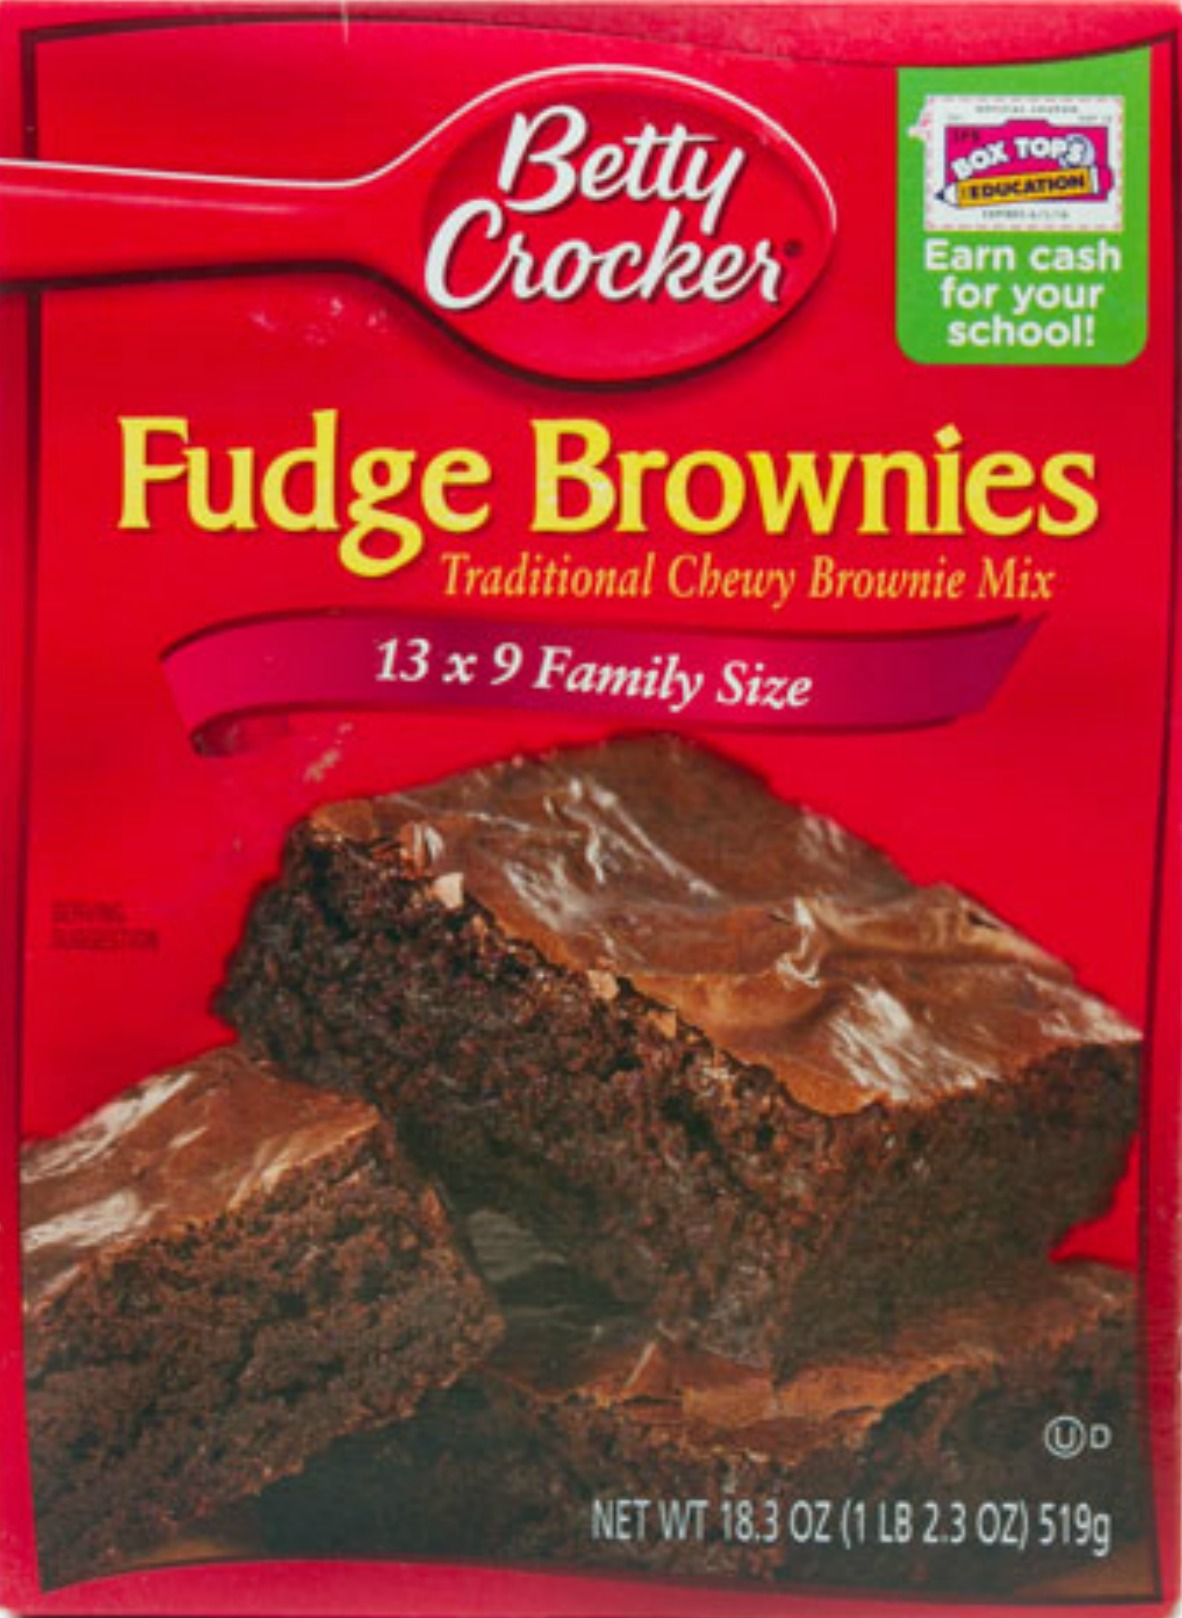 Pillsbury Chocolate Fudge Brownie Mix Are Very Moist